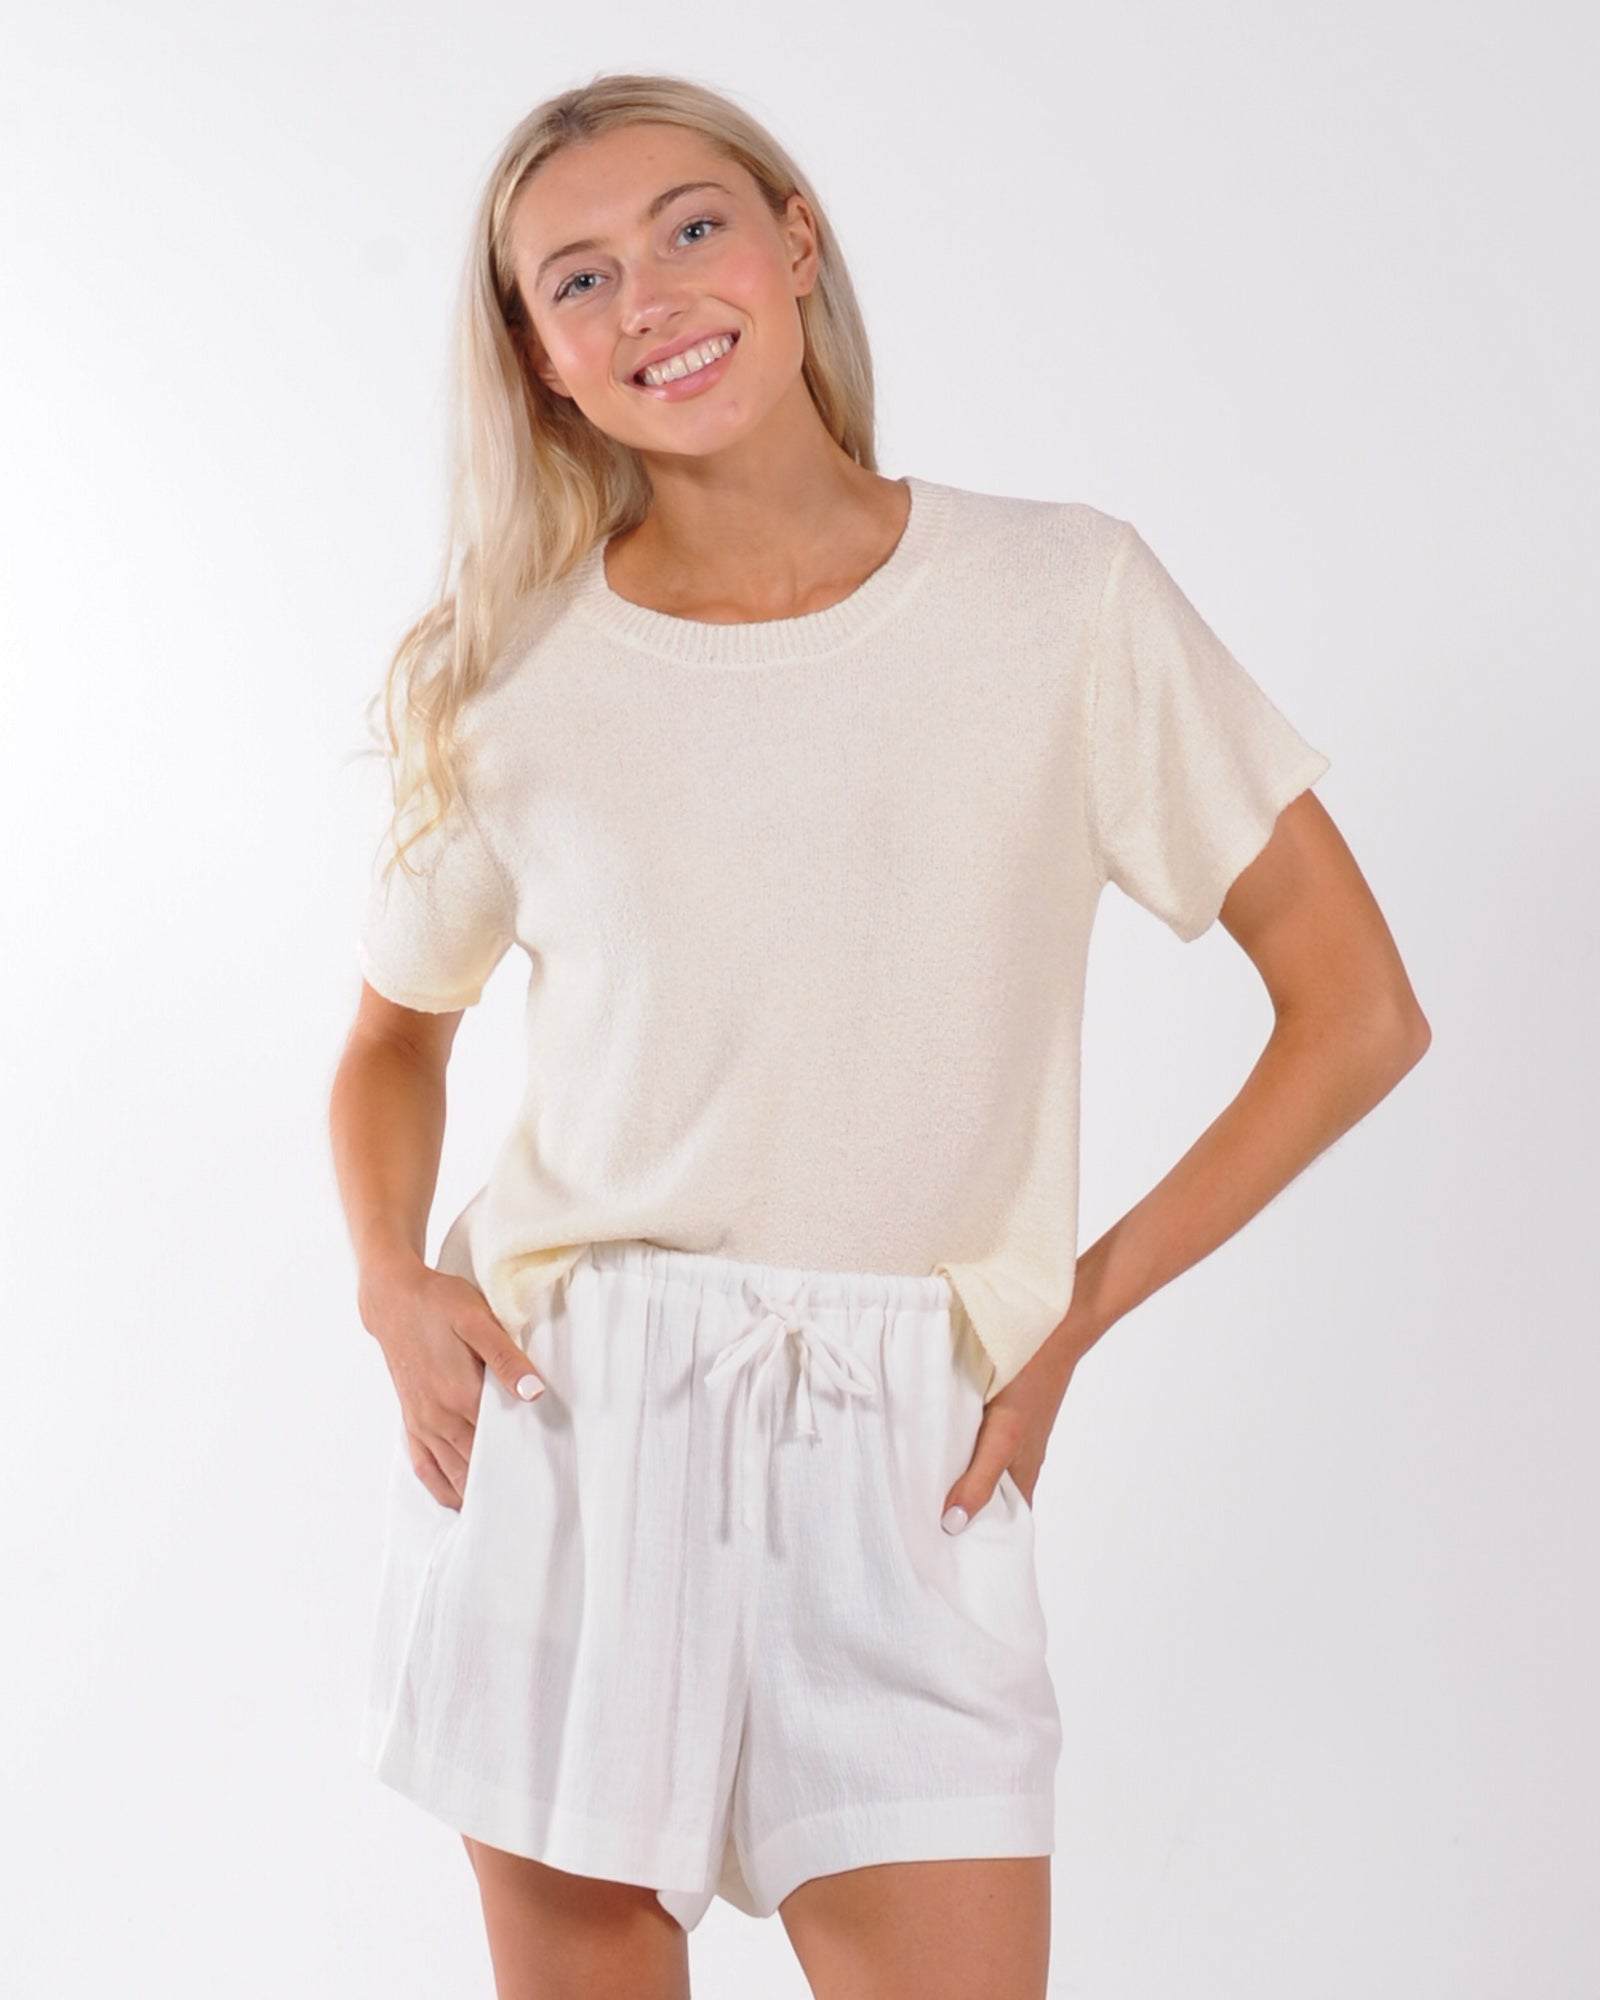 Nude Lucy Coops Knitted Tee - Cream